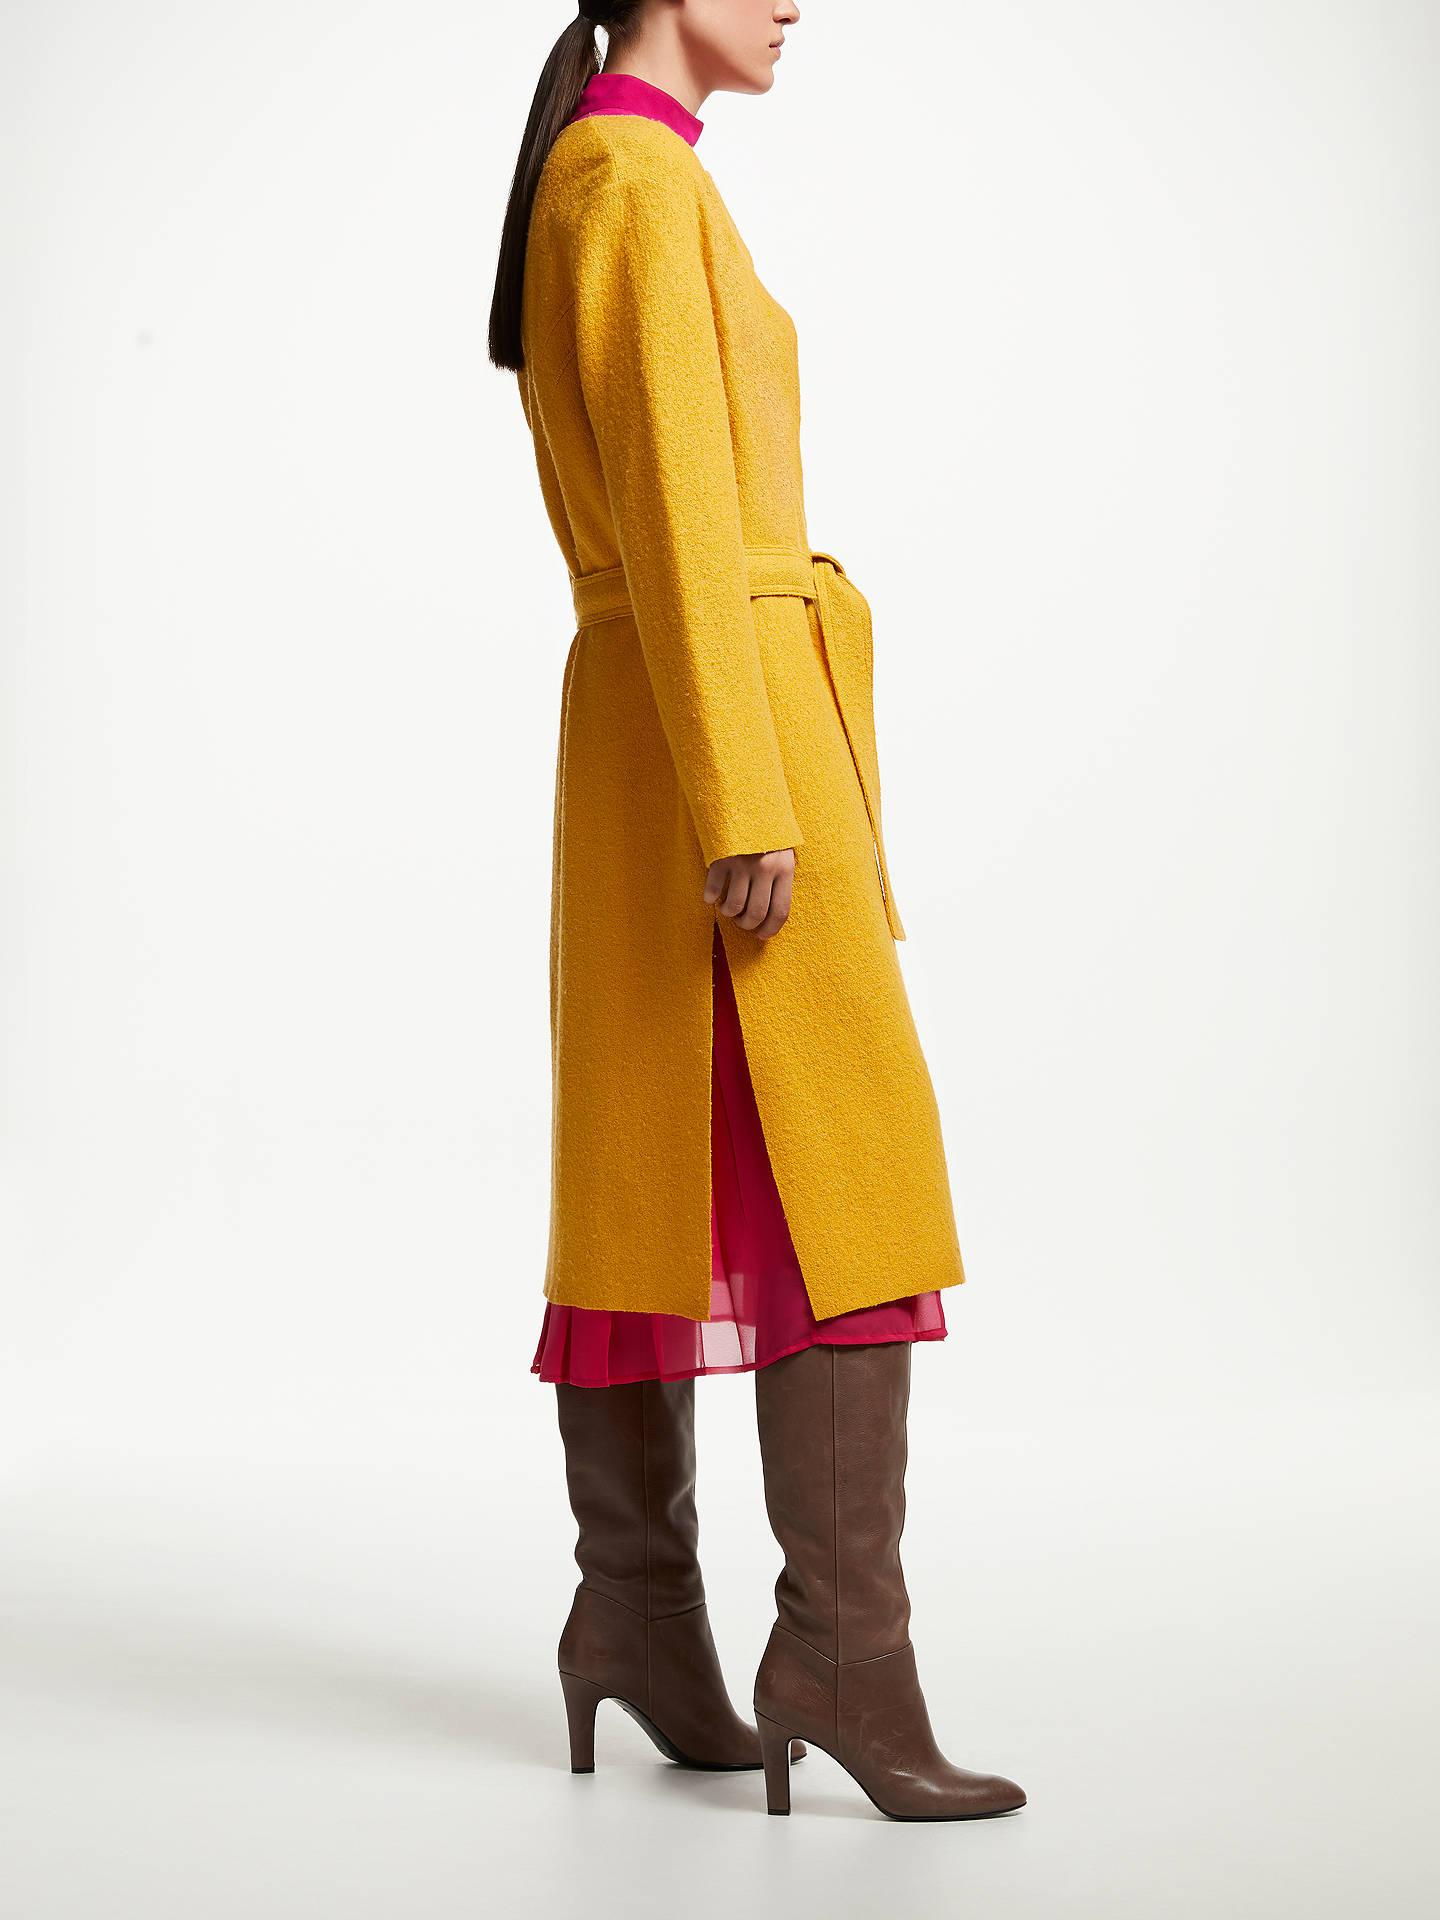 This yellow wool blend coatigan works beautifully with the pink dress and chocolate brown boots | More ideas and colours to wear with brown from kittyandb.com | #brown #yellowcoat #kneeboots #brownoutfit